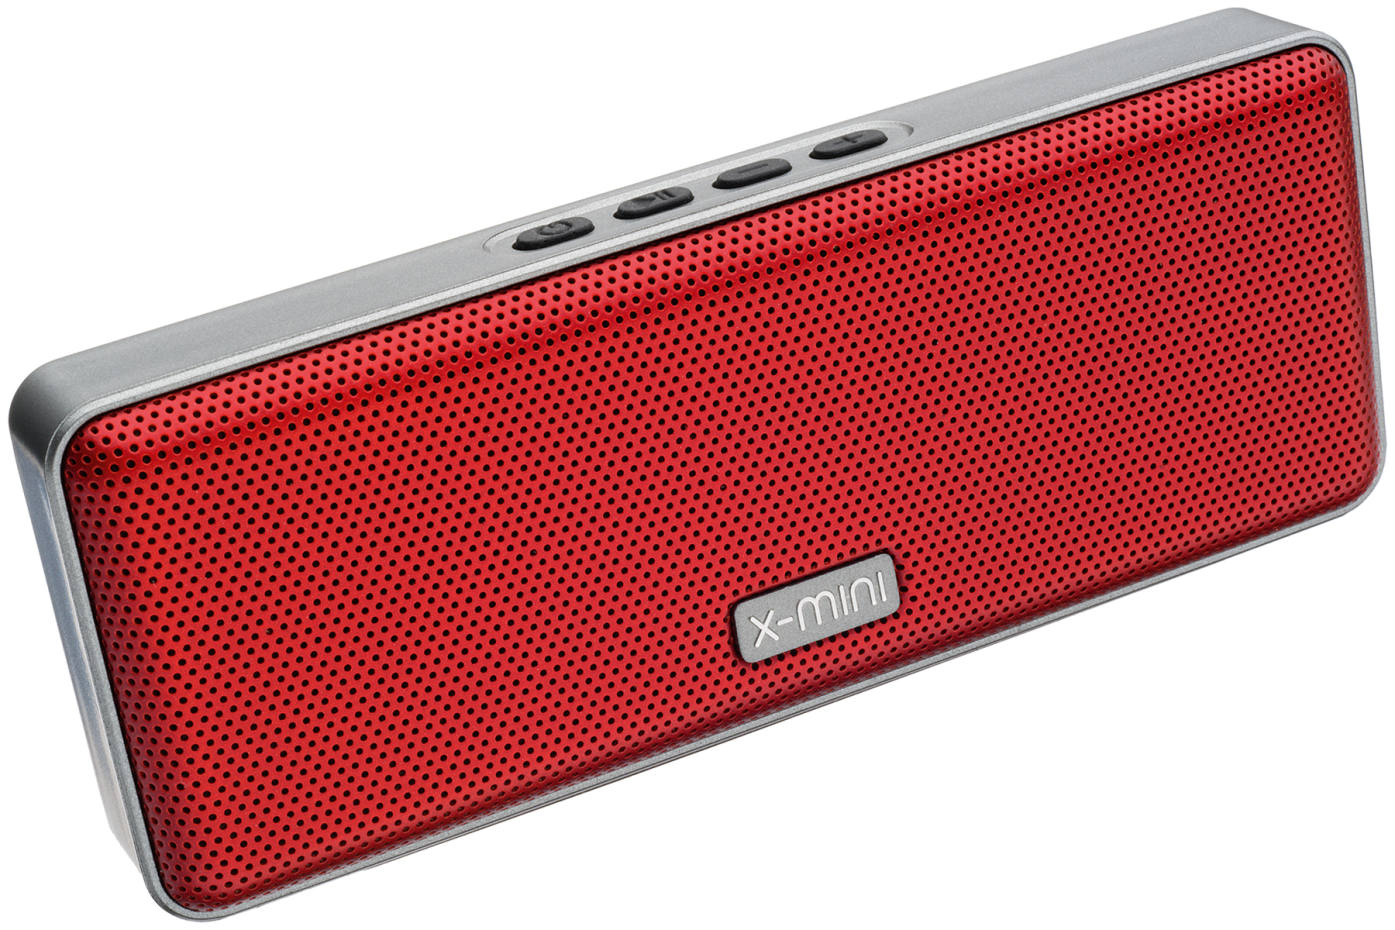 An ultra-small travel speaker with big sound